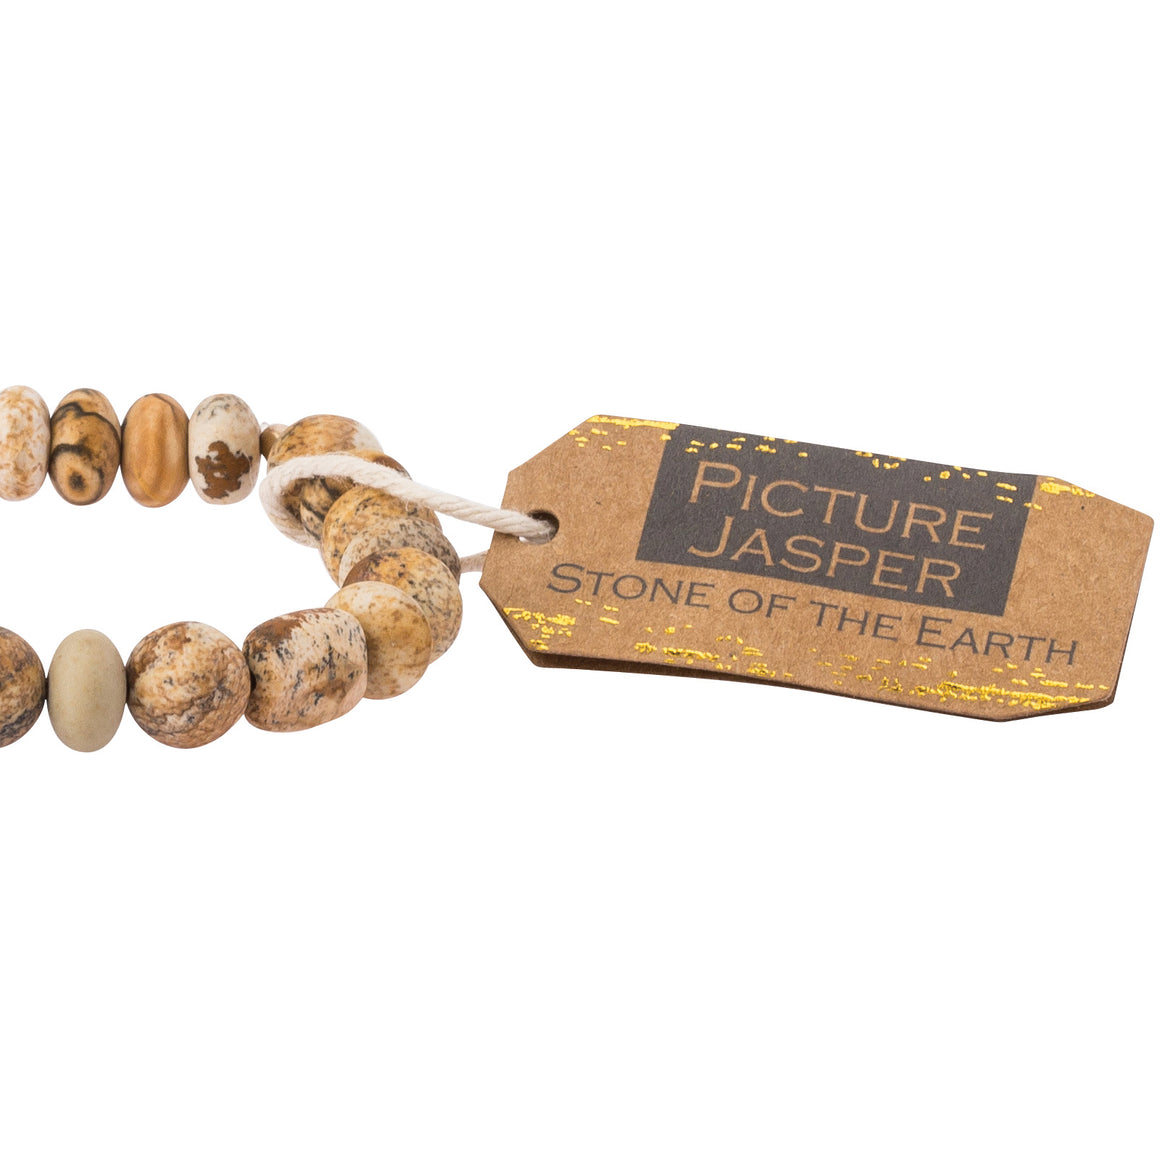 Picture Jasper Stone Bracelet - Stone of the Earth